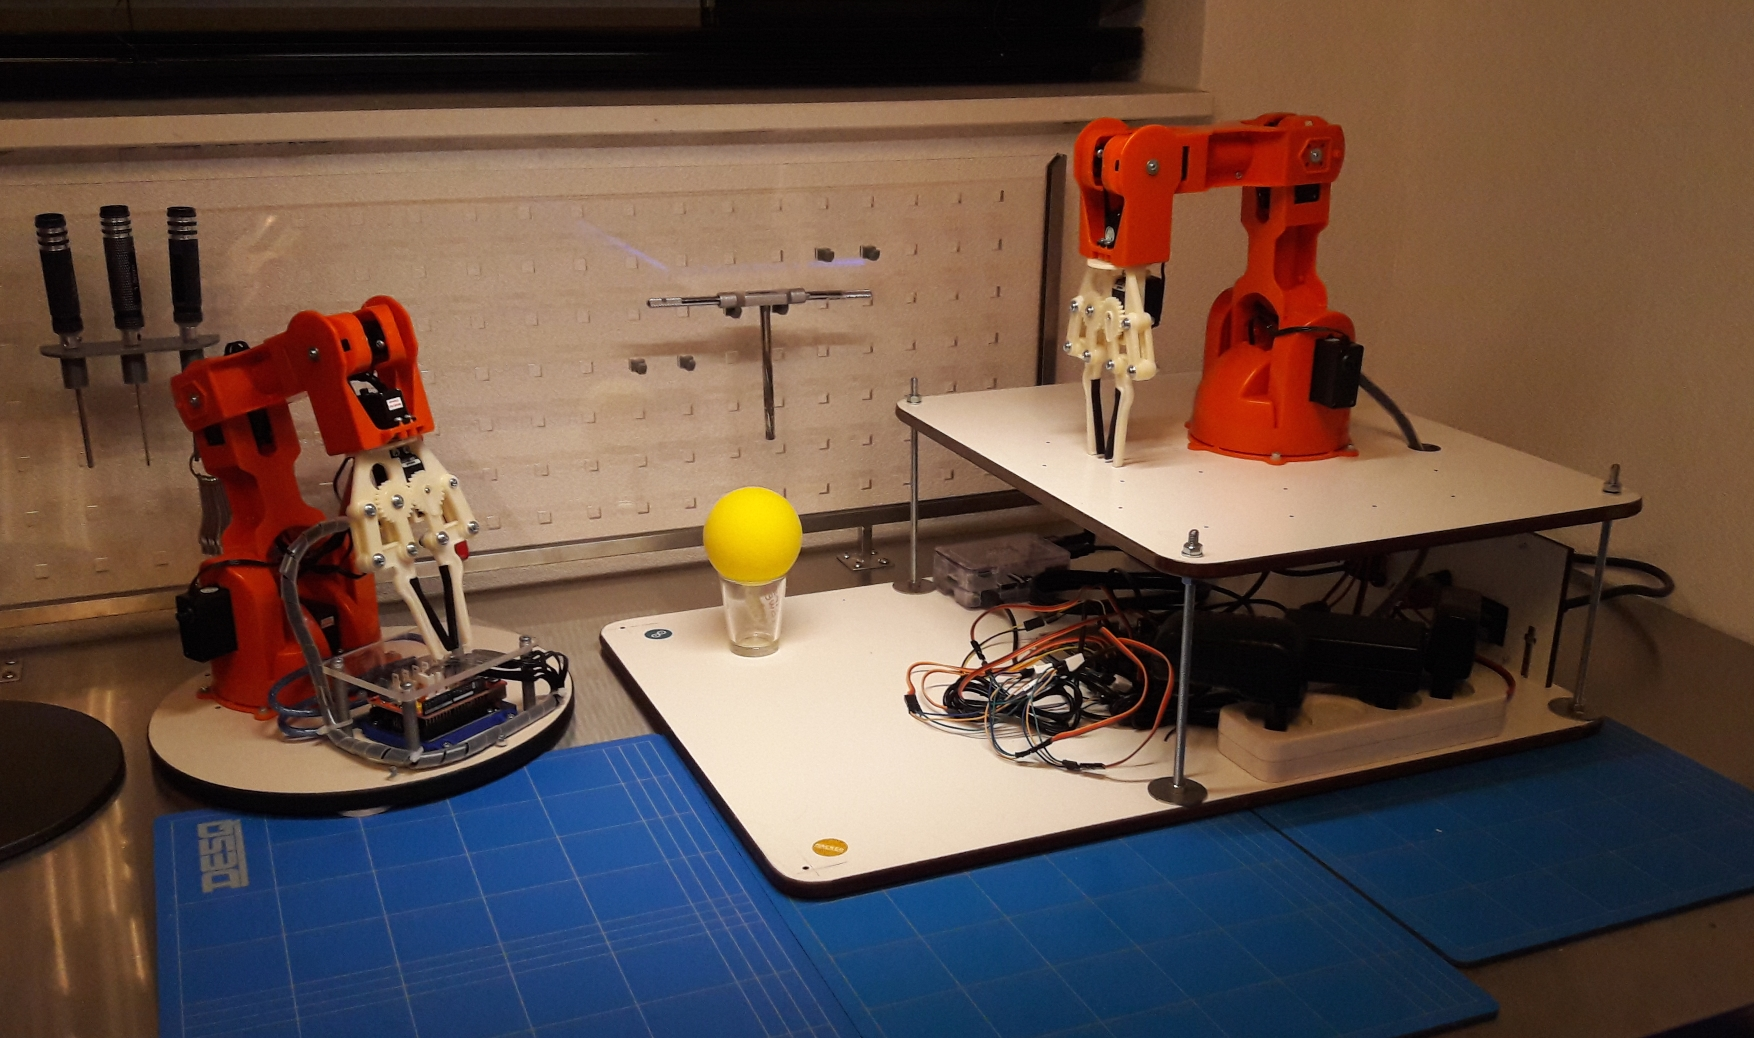 Arduino braccio robot arm raspberry pi controlled with